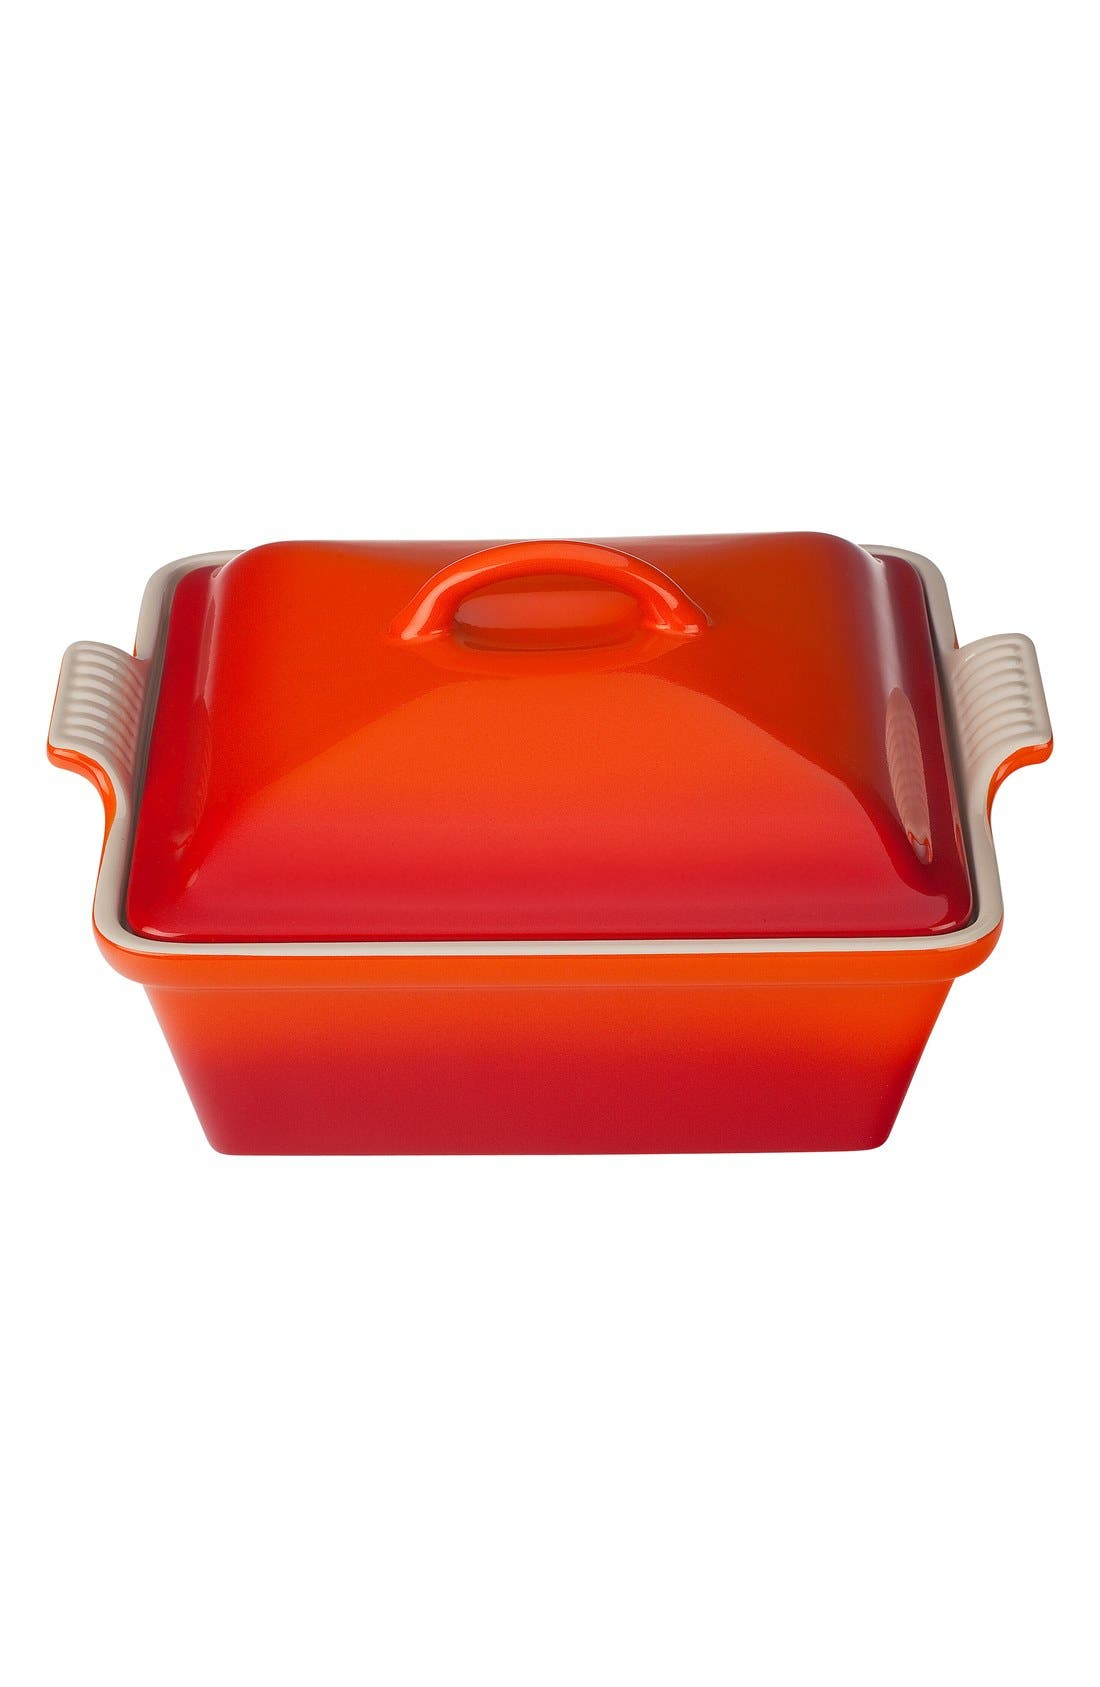 LE CREUSET Heritage 2 1/2 Quart Covered Square